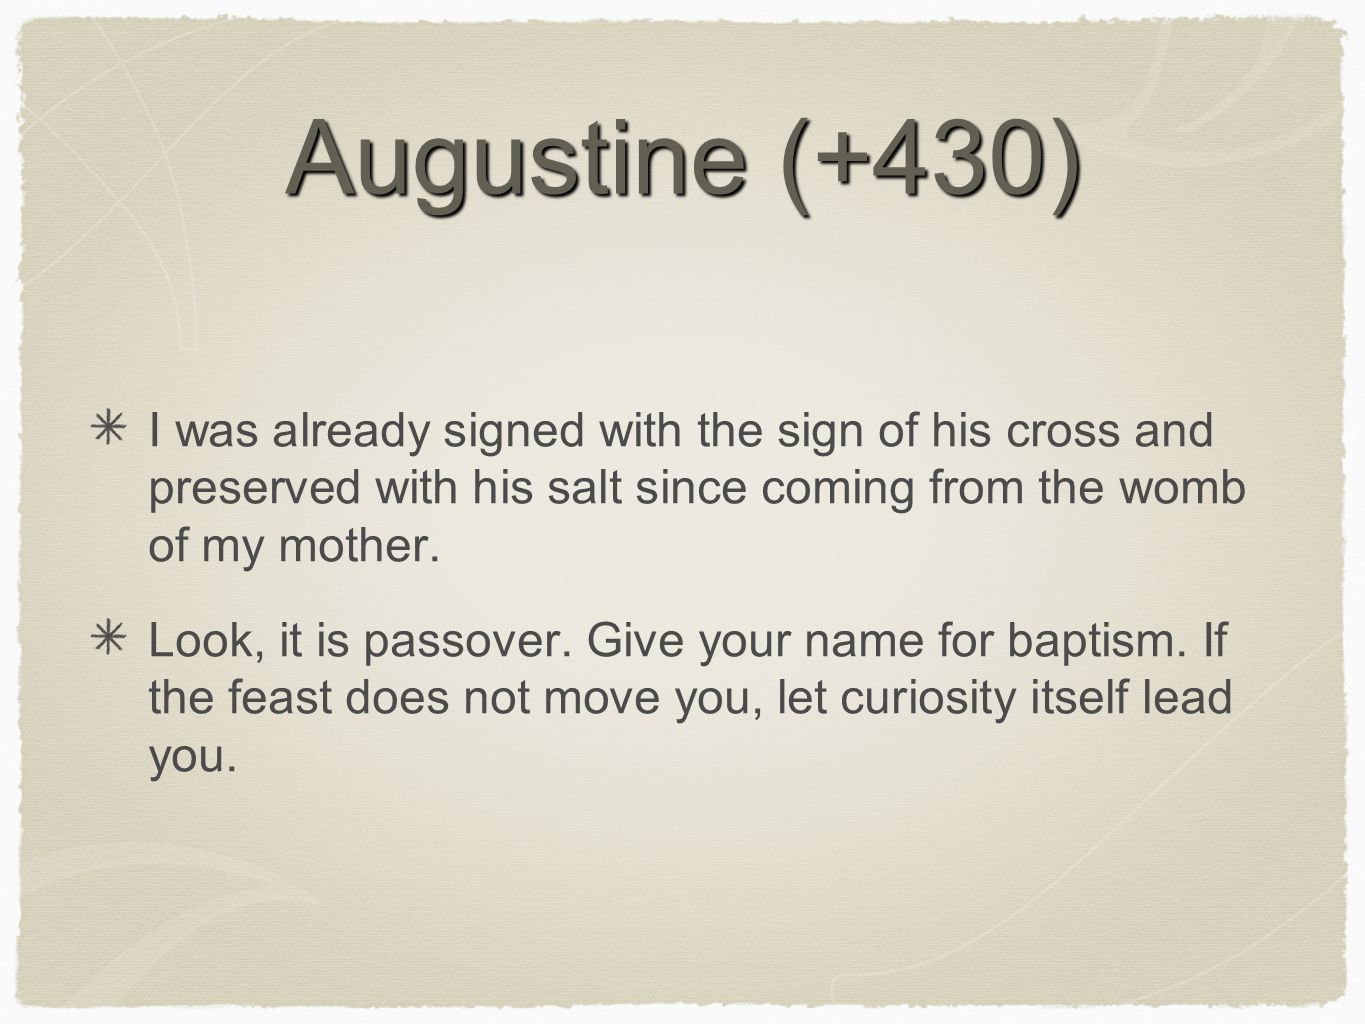 Augustine (+430) I was already signed with the sign of his cross and preserved with his salt since coming from the womb of my mother.